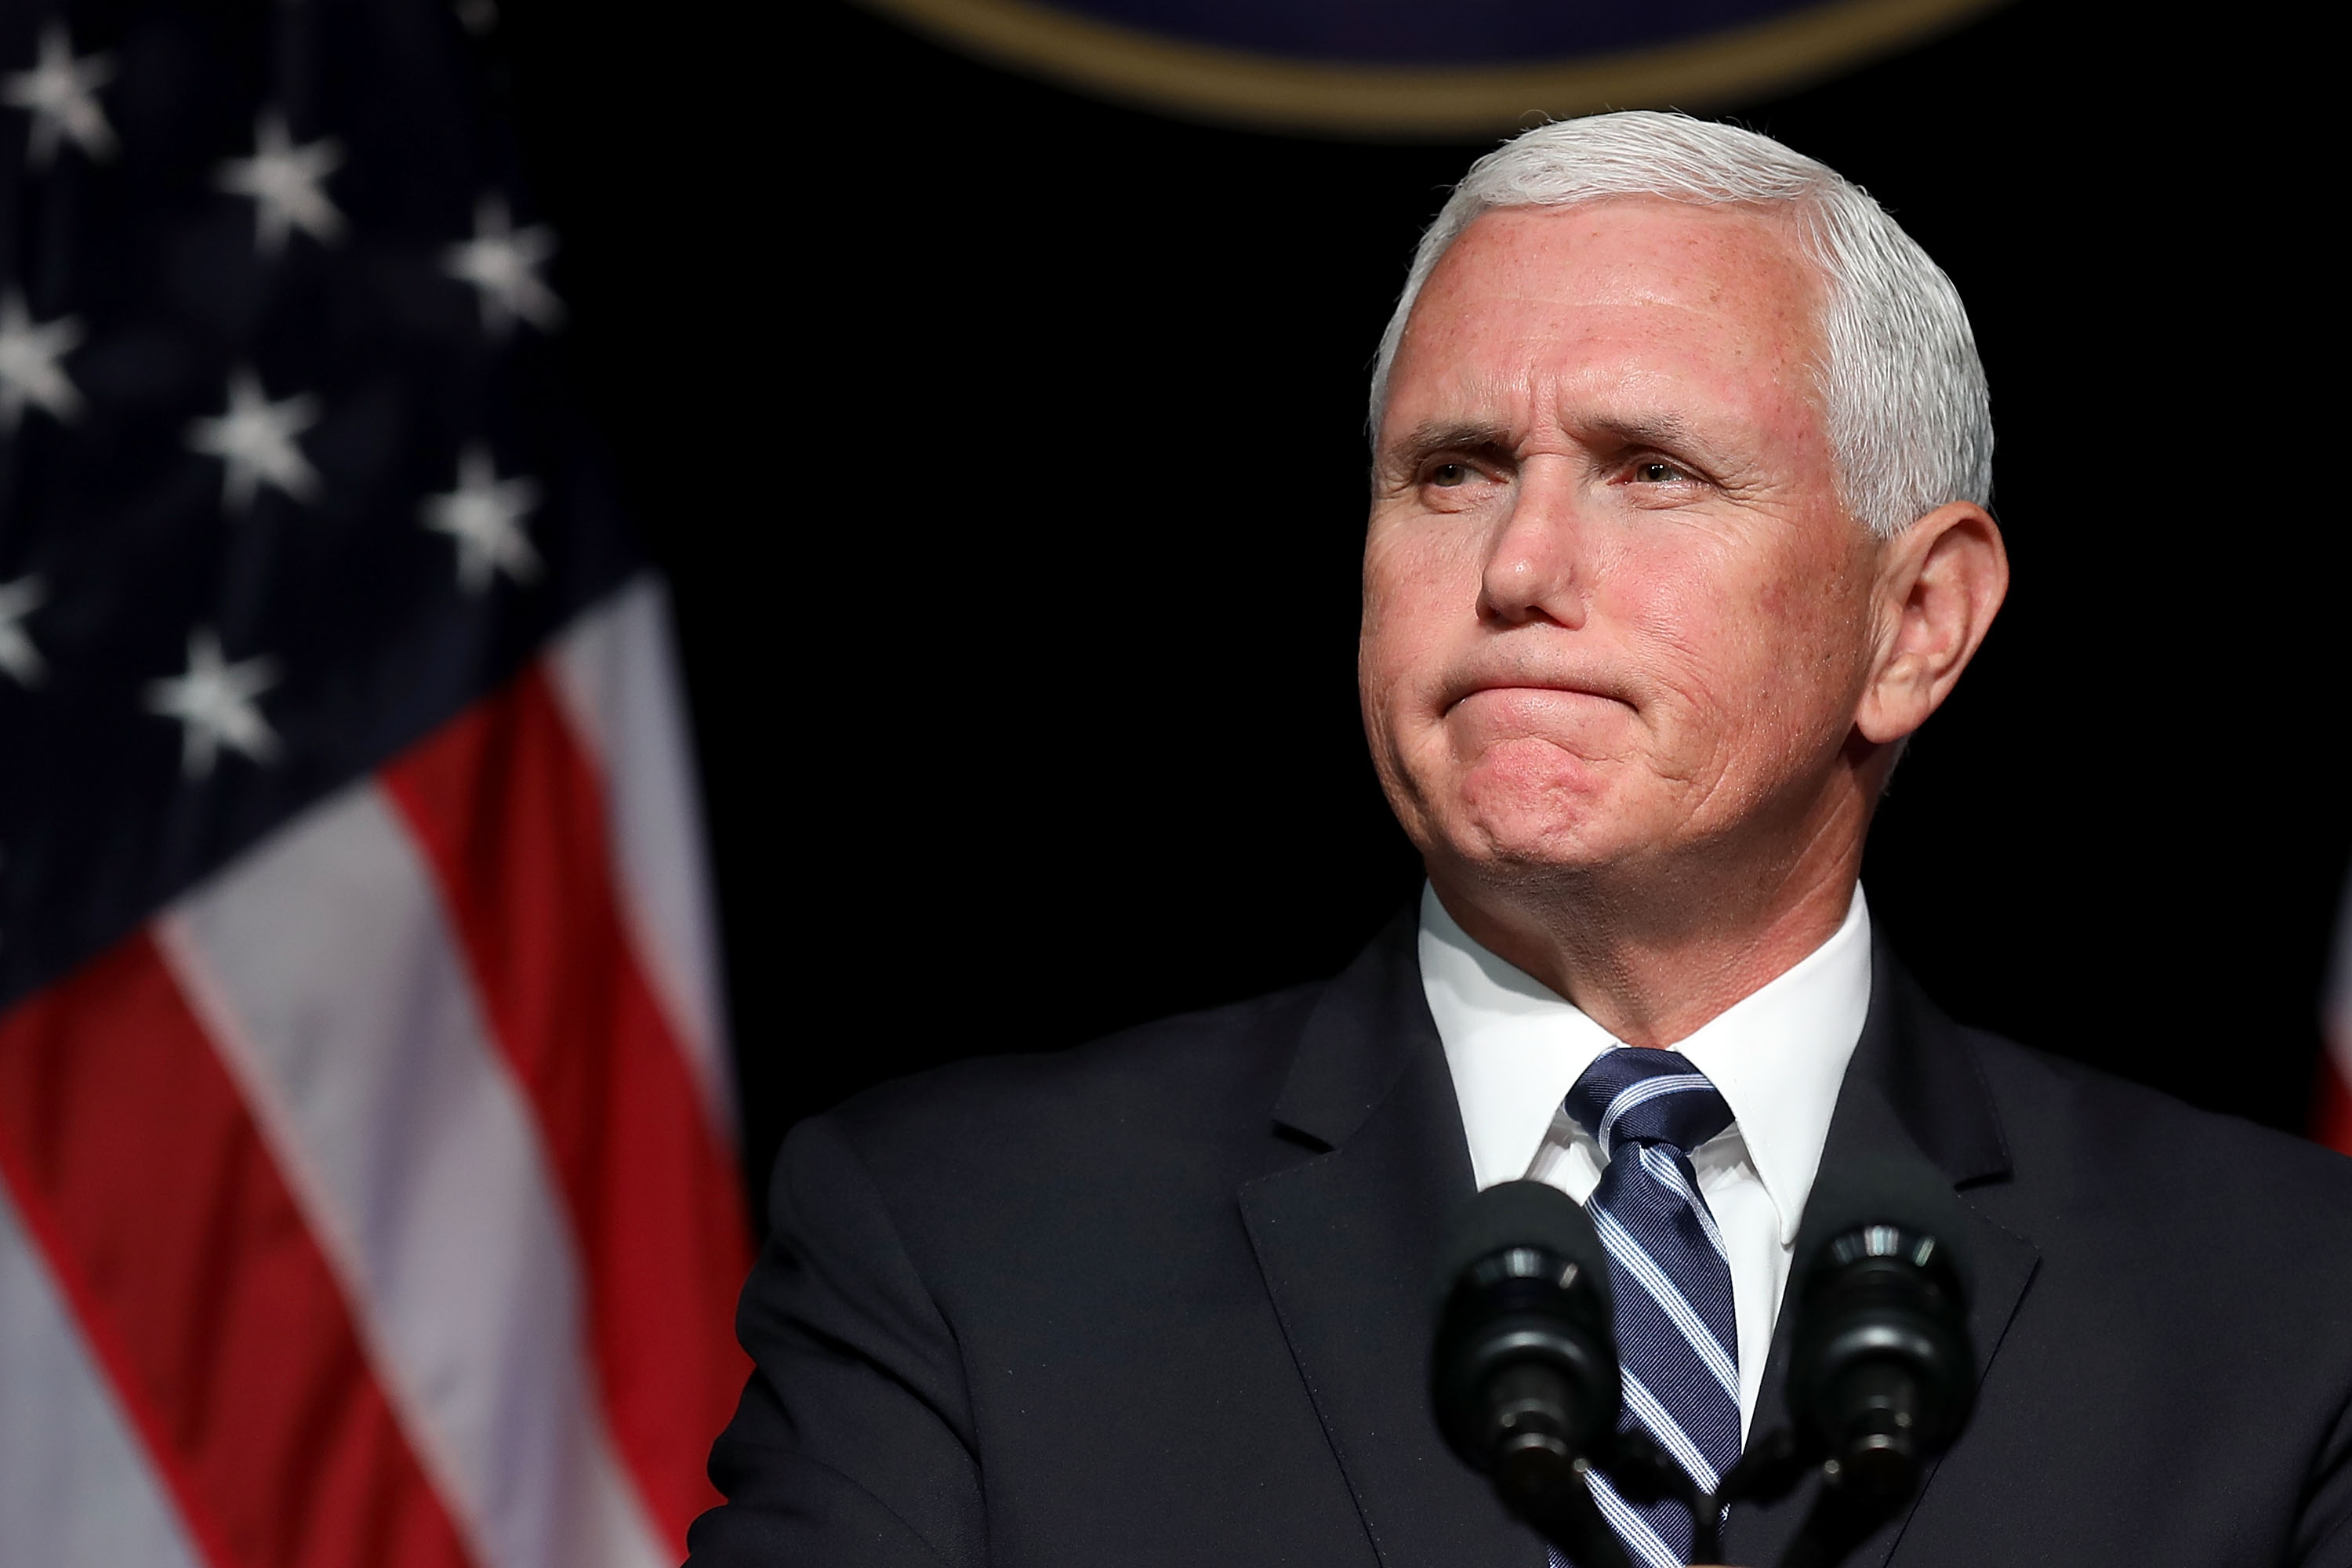 U.S. Vice President Mike Pence announces the Trump Administration's plan to create the U.S. Space Force by 2020 during a speech at the Pentagon August 9, 2018 in Arlington, Virginia. Describing space as advasarial and crowded and citing threats from China and Russia, Pence said the new Space Force would be a separate, sixth branch of the military.